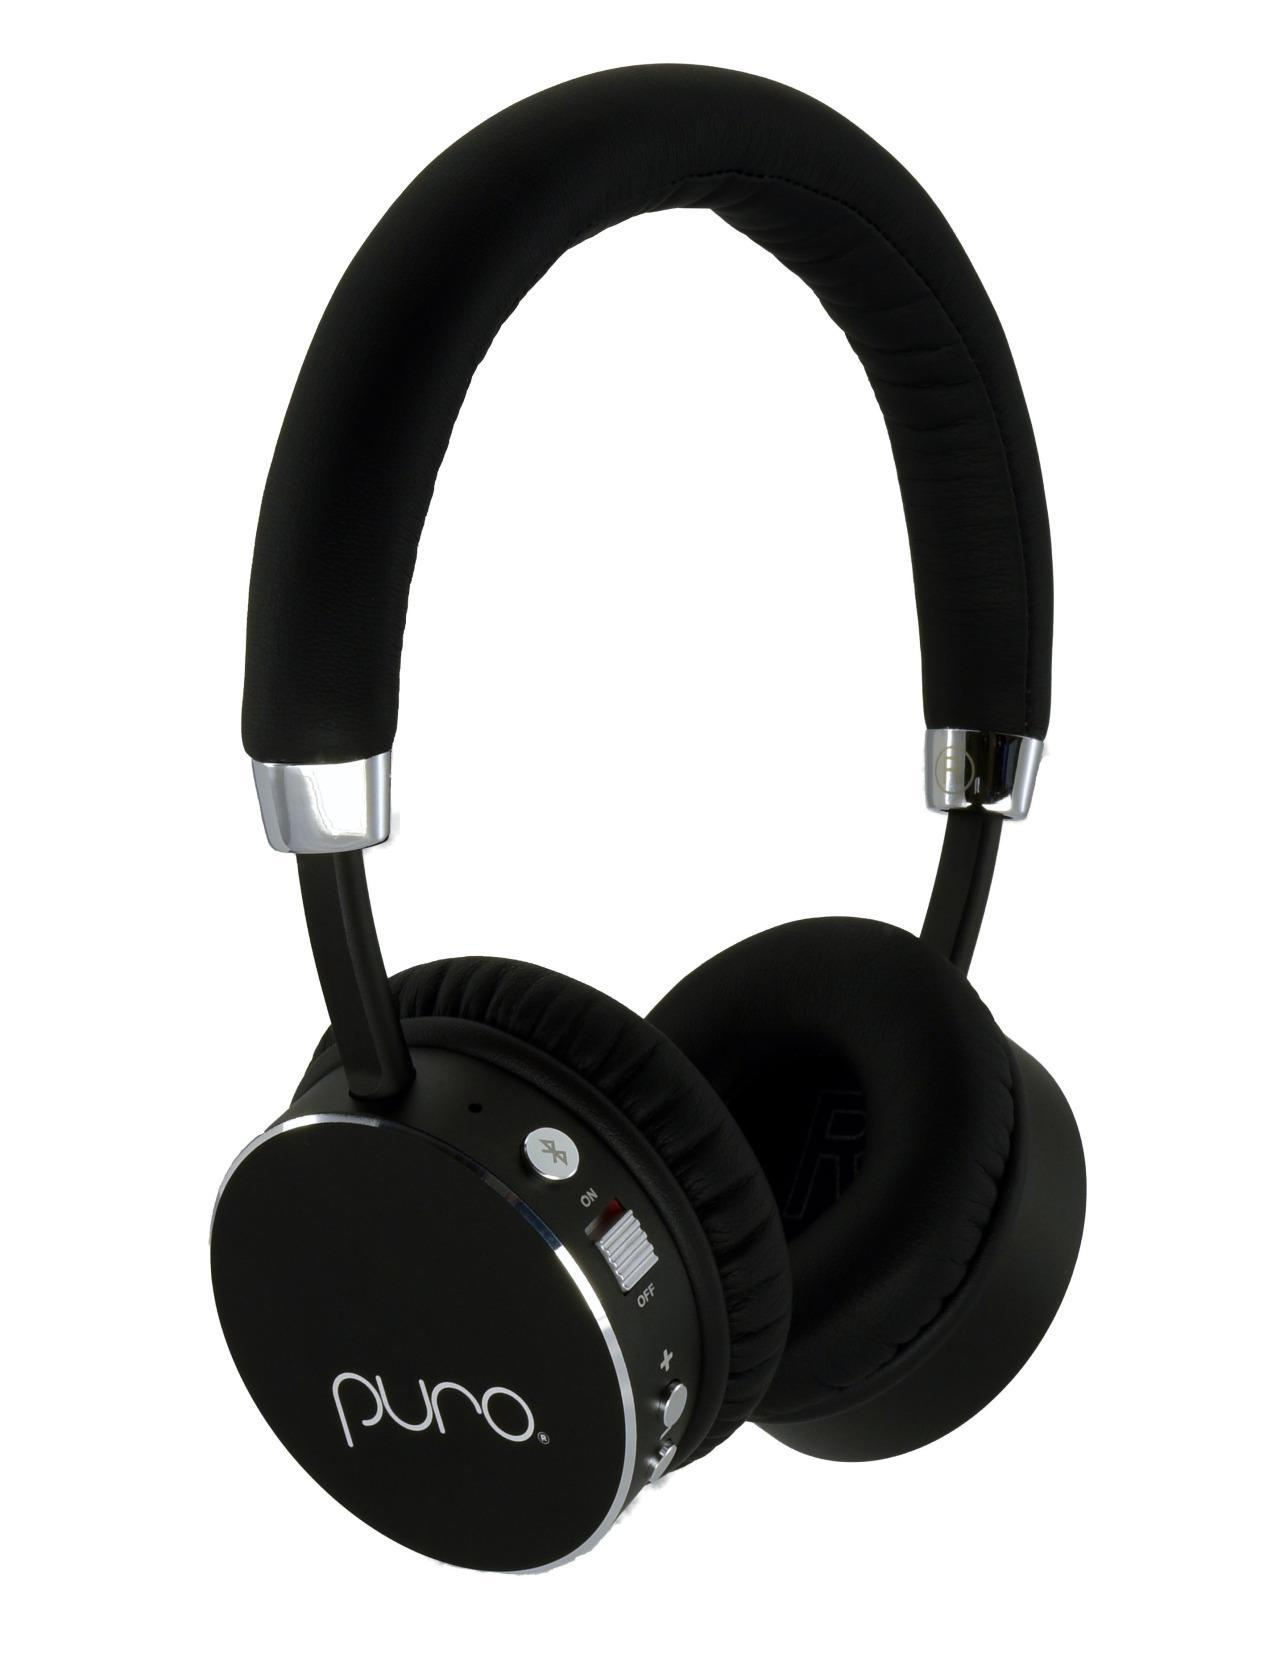 Save 25 Percent on Headphones That Are Actually Good For Your Ears (Deal of the Day)